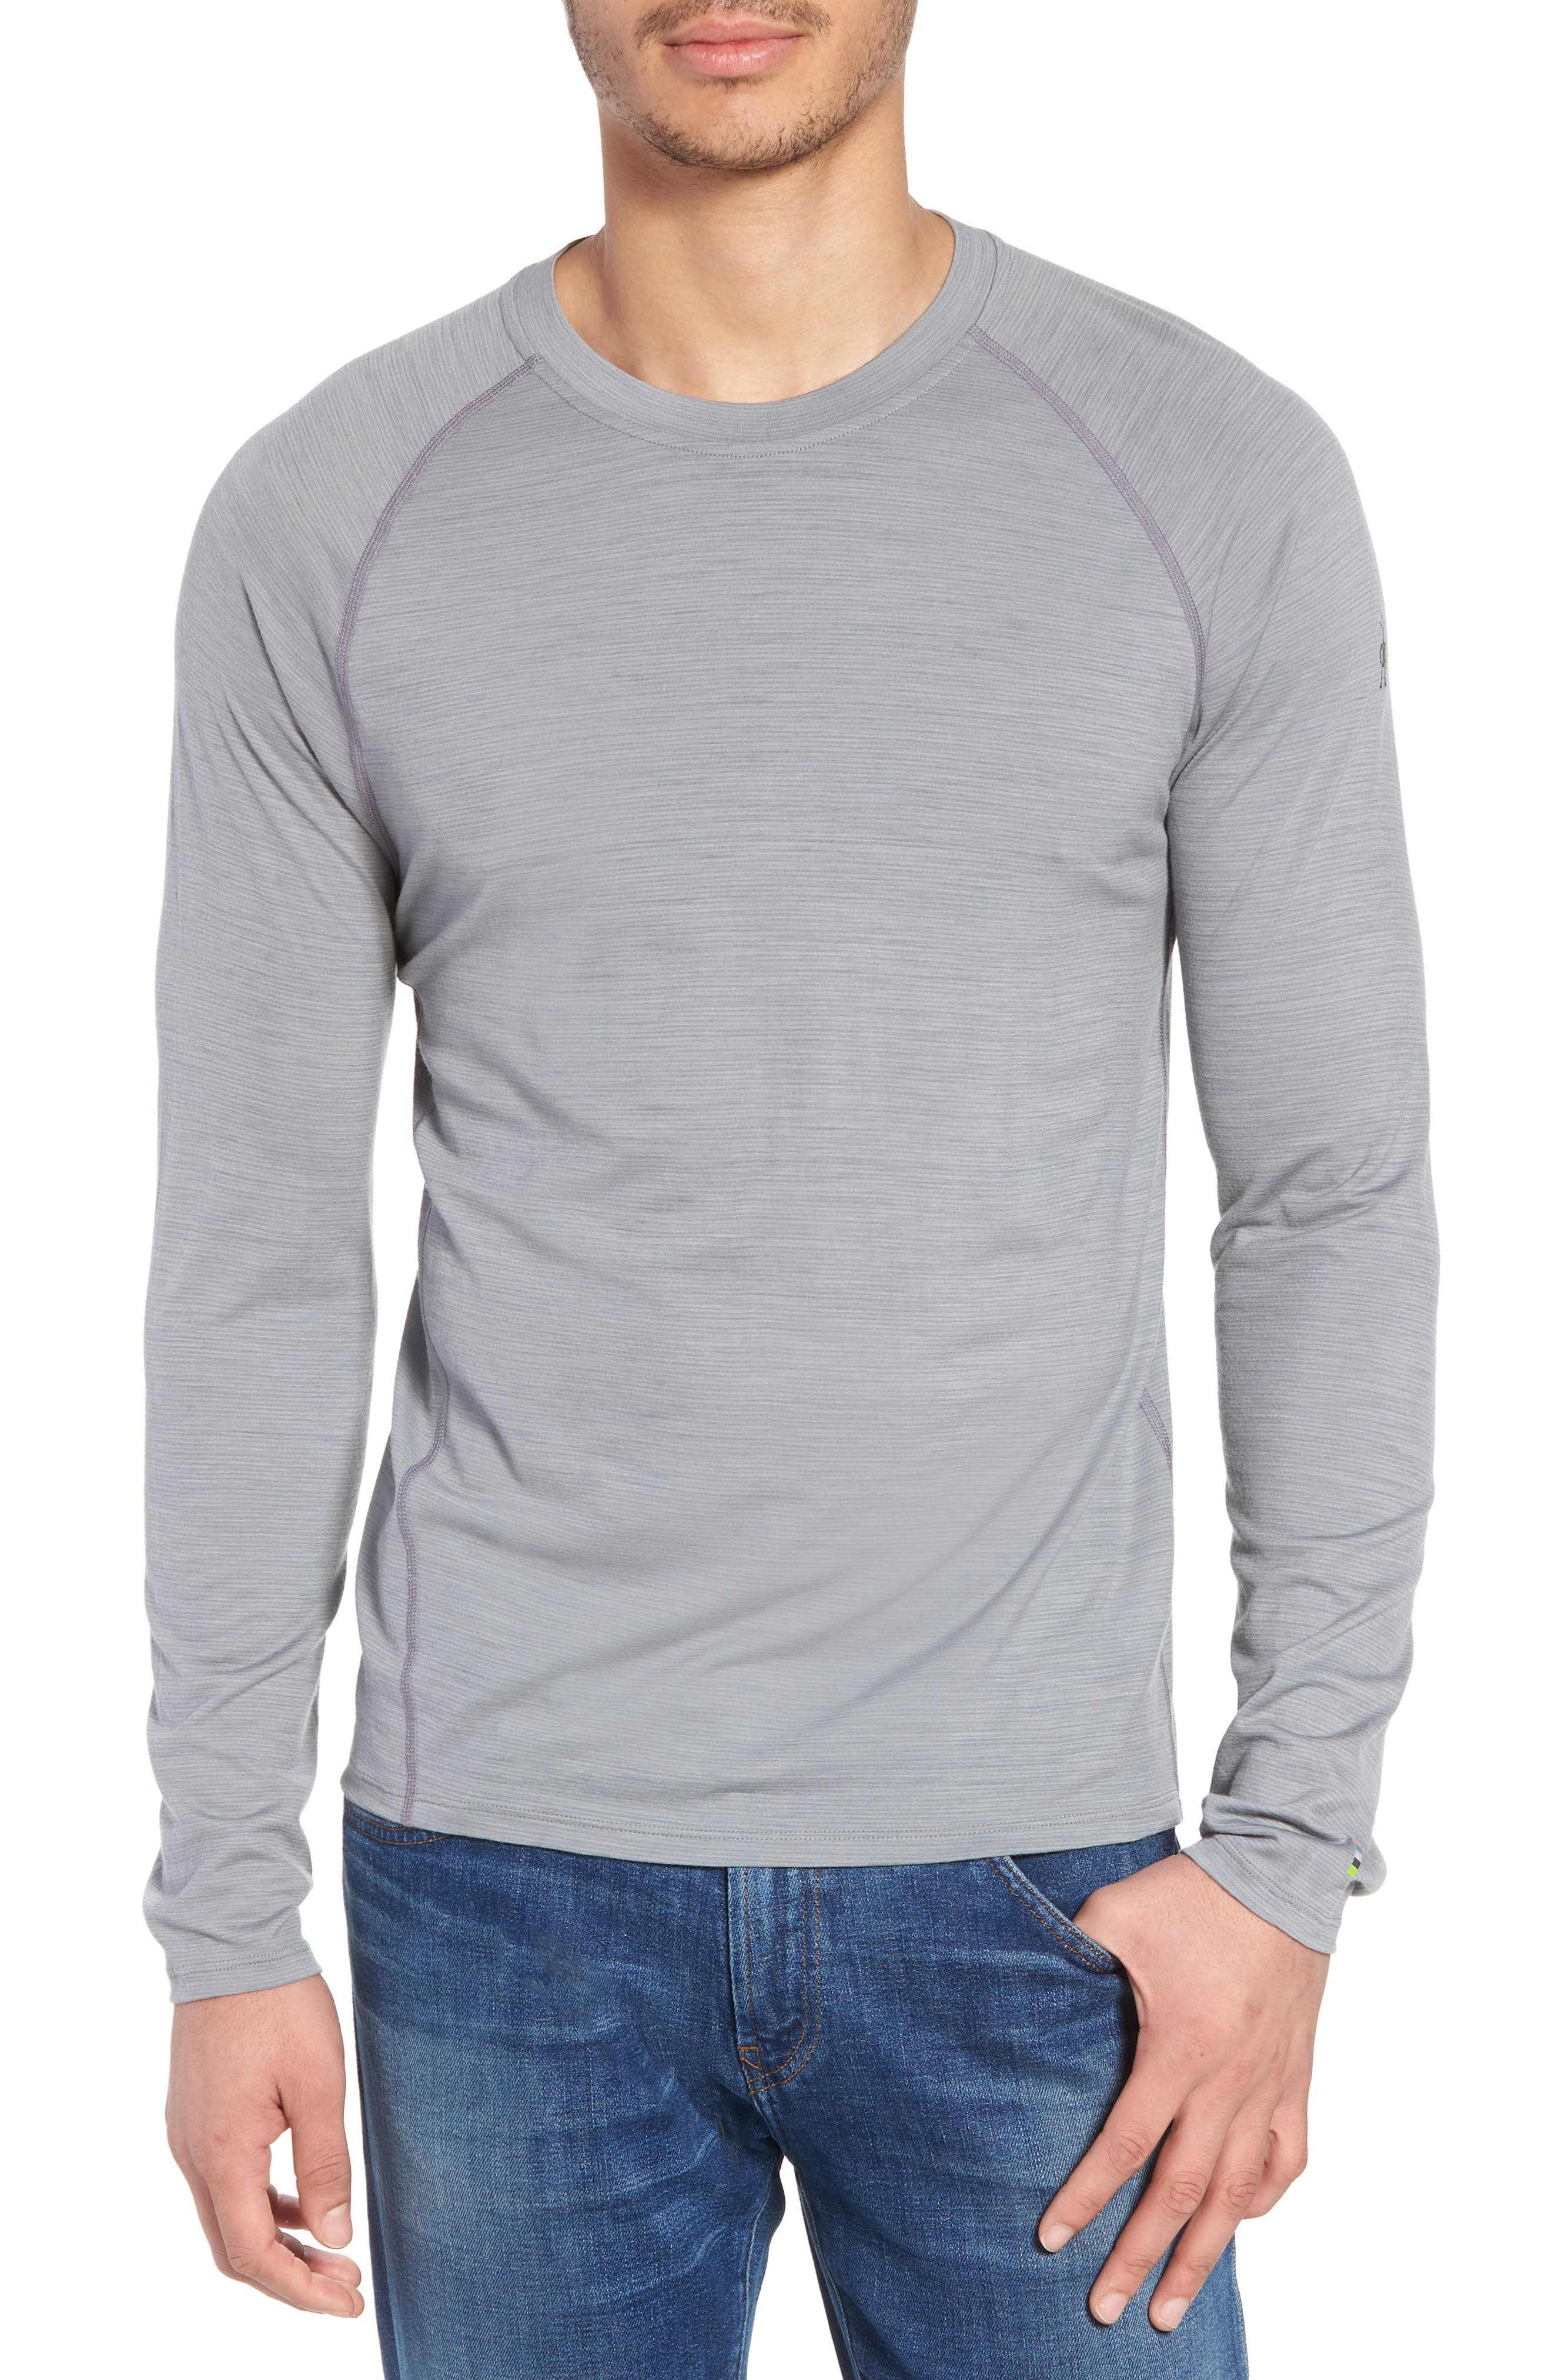 SMARTWOOL Merino 150 Wool Blend Long Sleeve T-Shirt, Main, color, LIGHT GREY